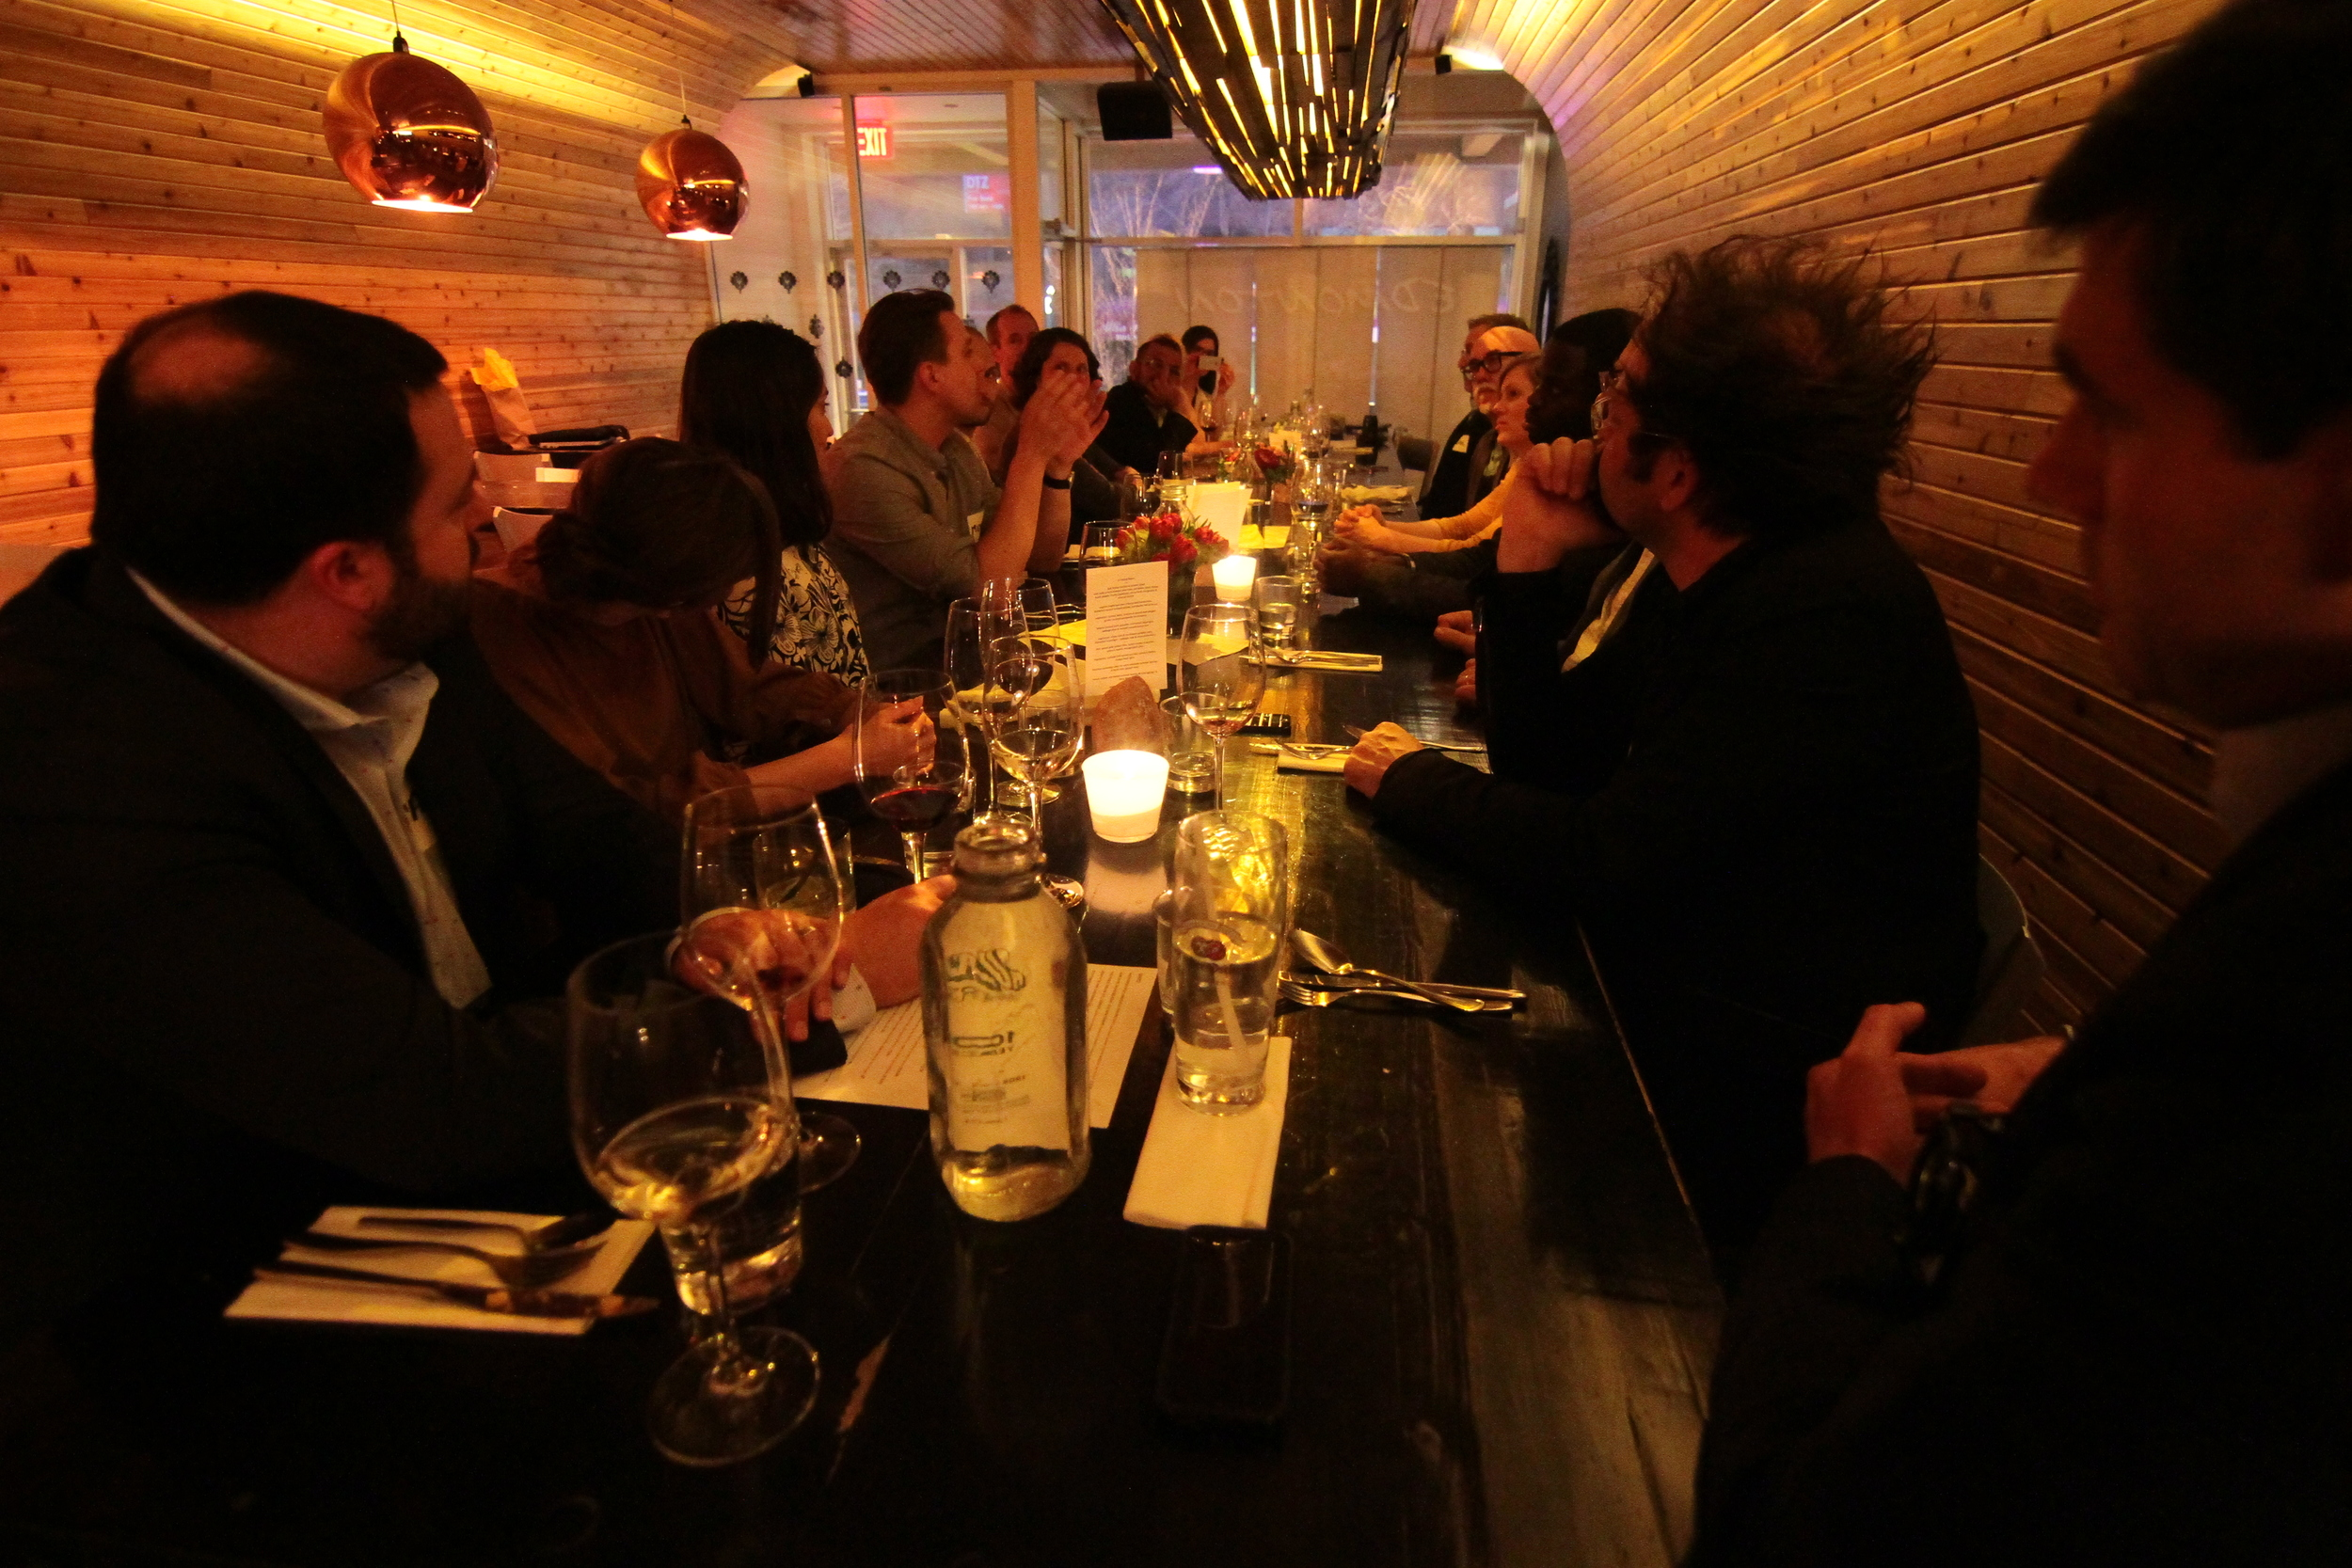 2014.04.30 Holinaty, Table for 12 (176) (1).JPG